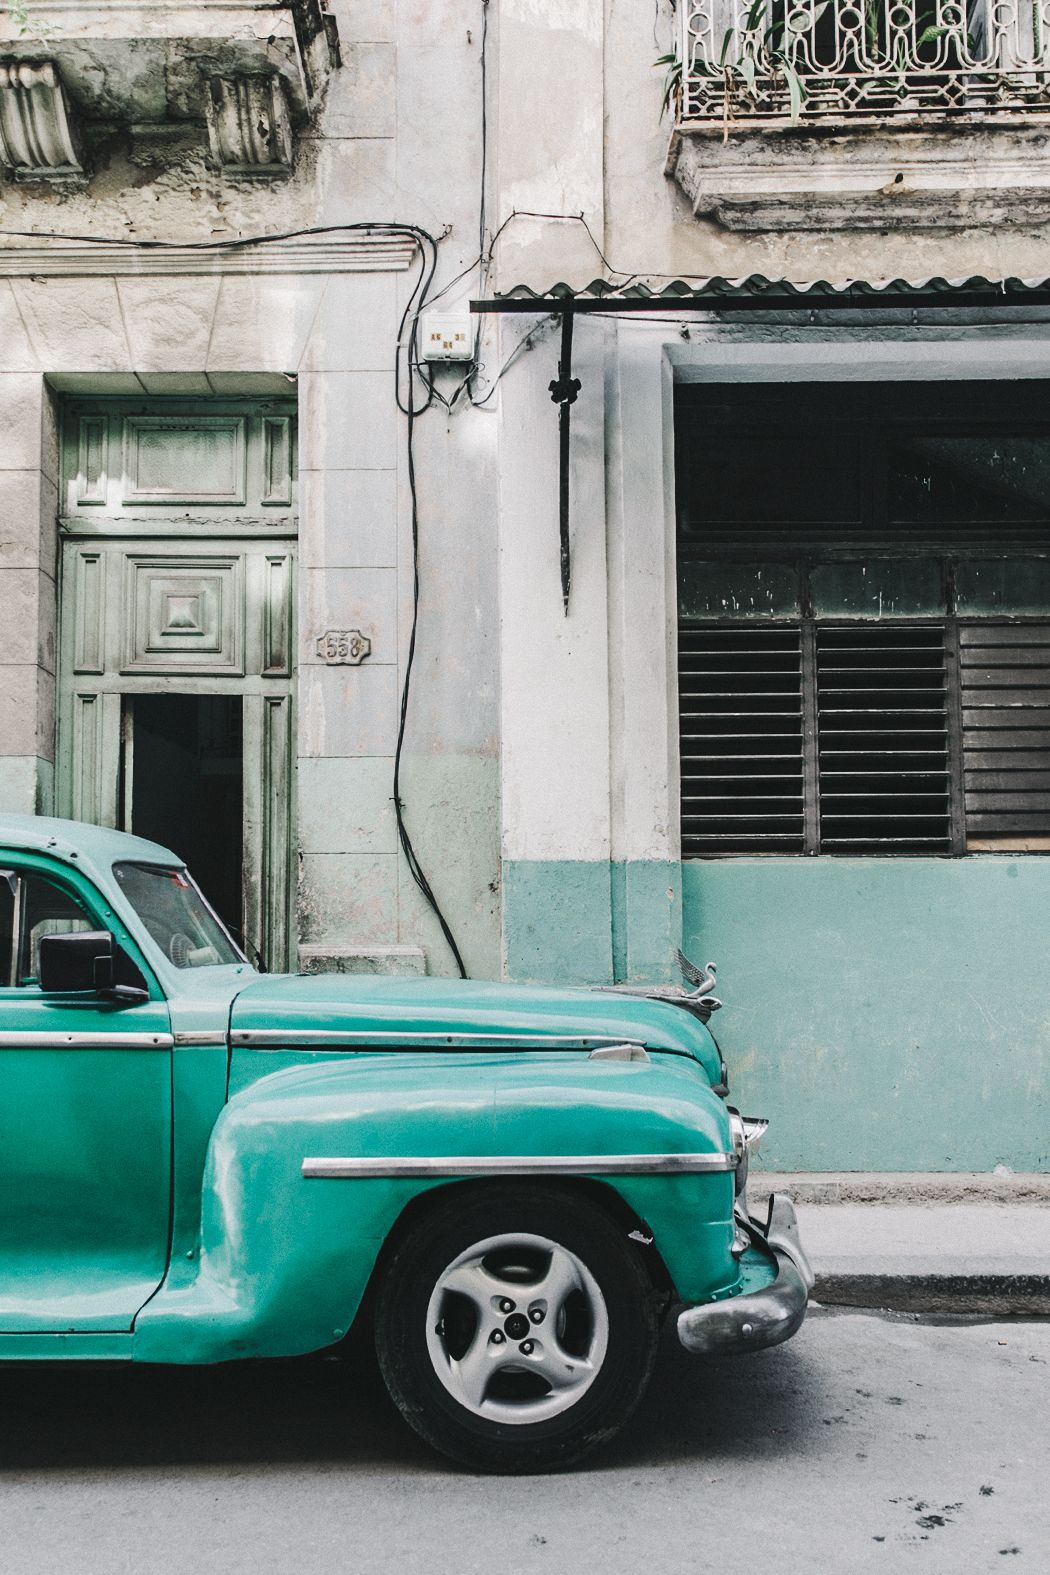 Cuba-Habana_Vieja-Suede_Skirt-Lace_UP_Body-Privacy_Please-Wedges-Outfit-Collage_Vintage-Travels-Street_Style-Backpack-23